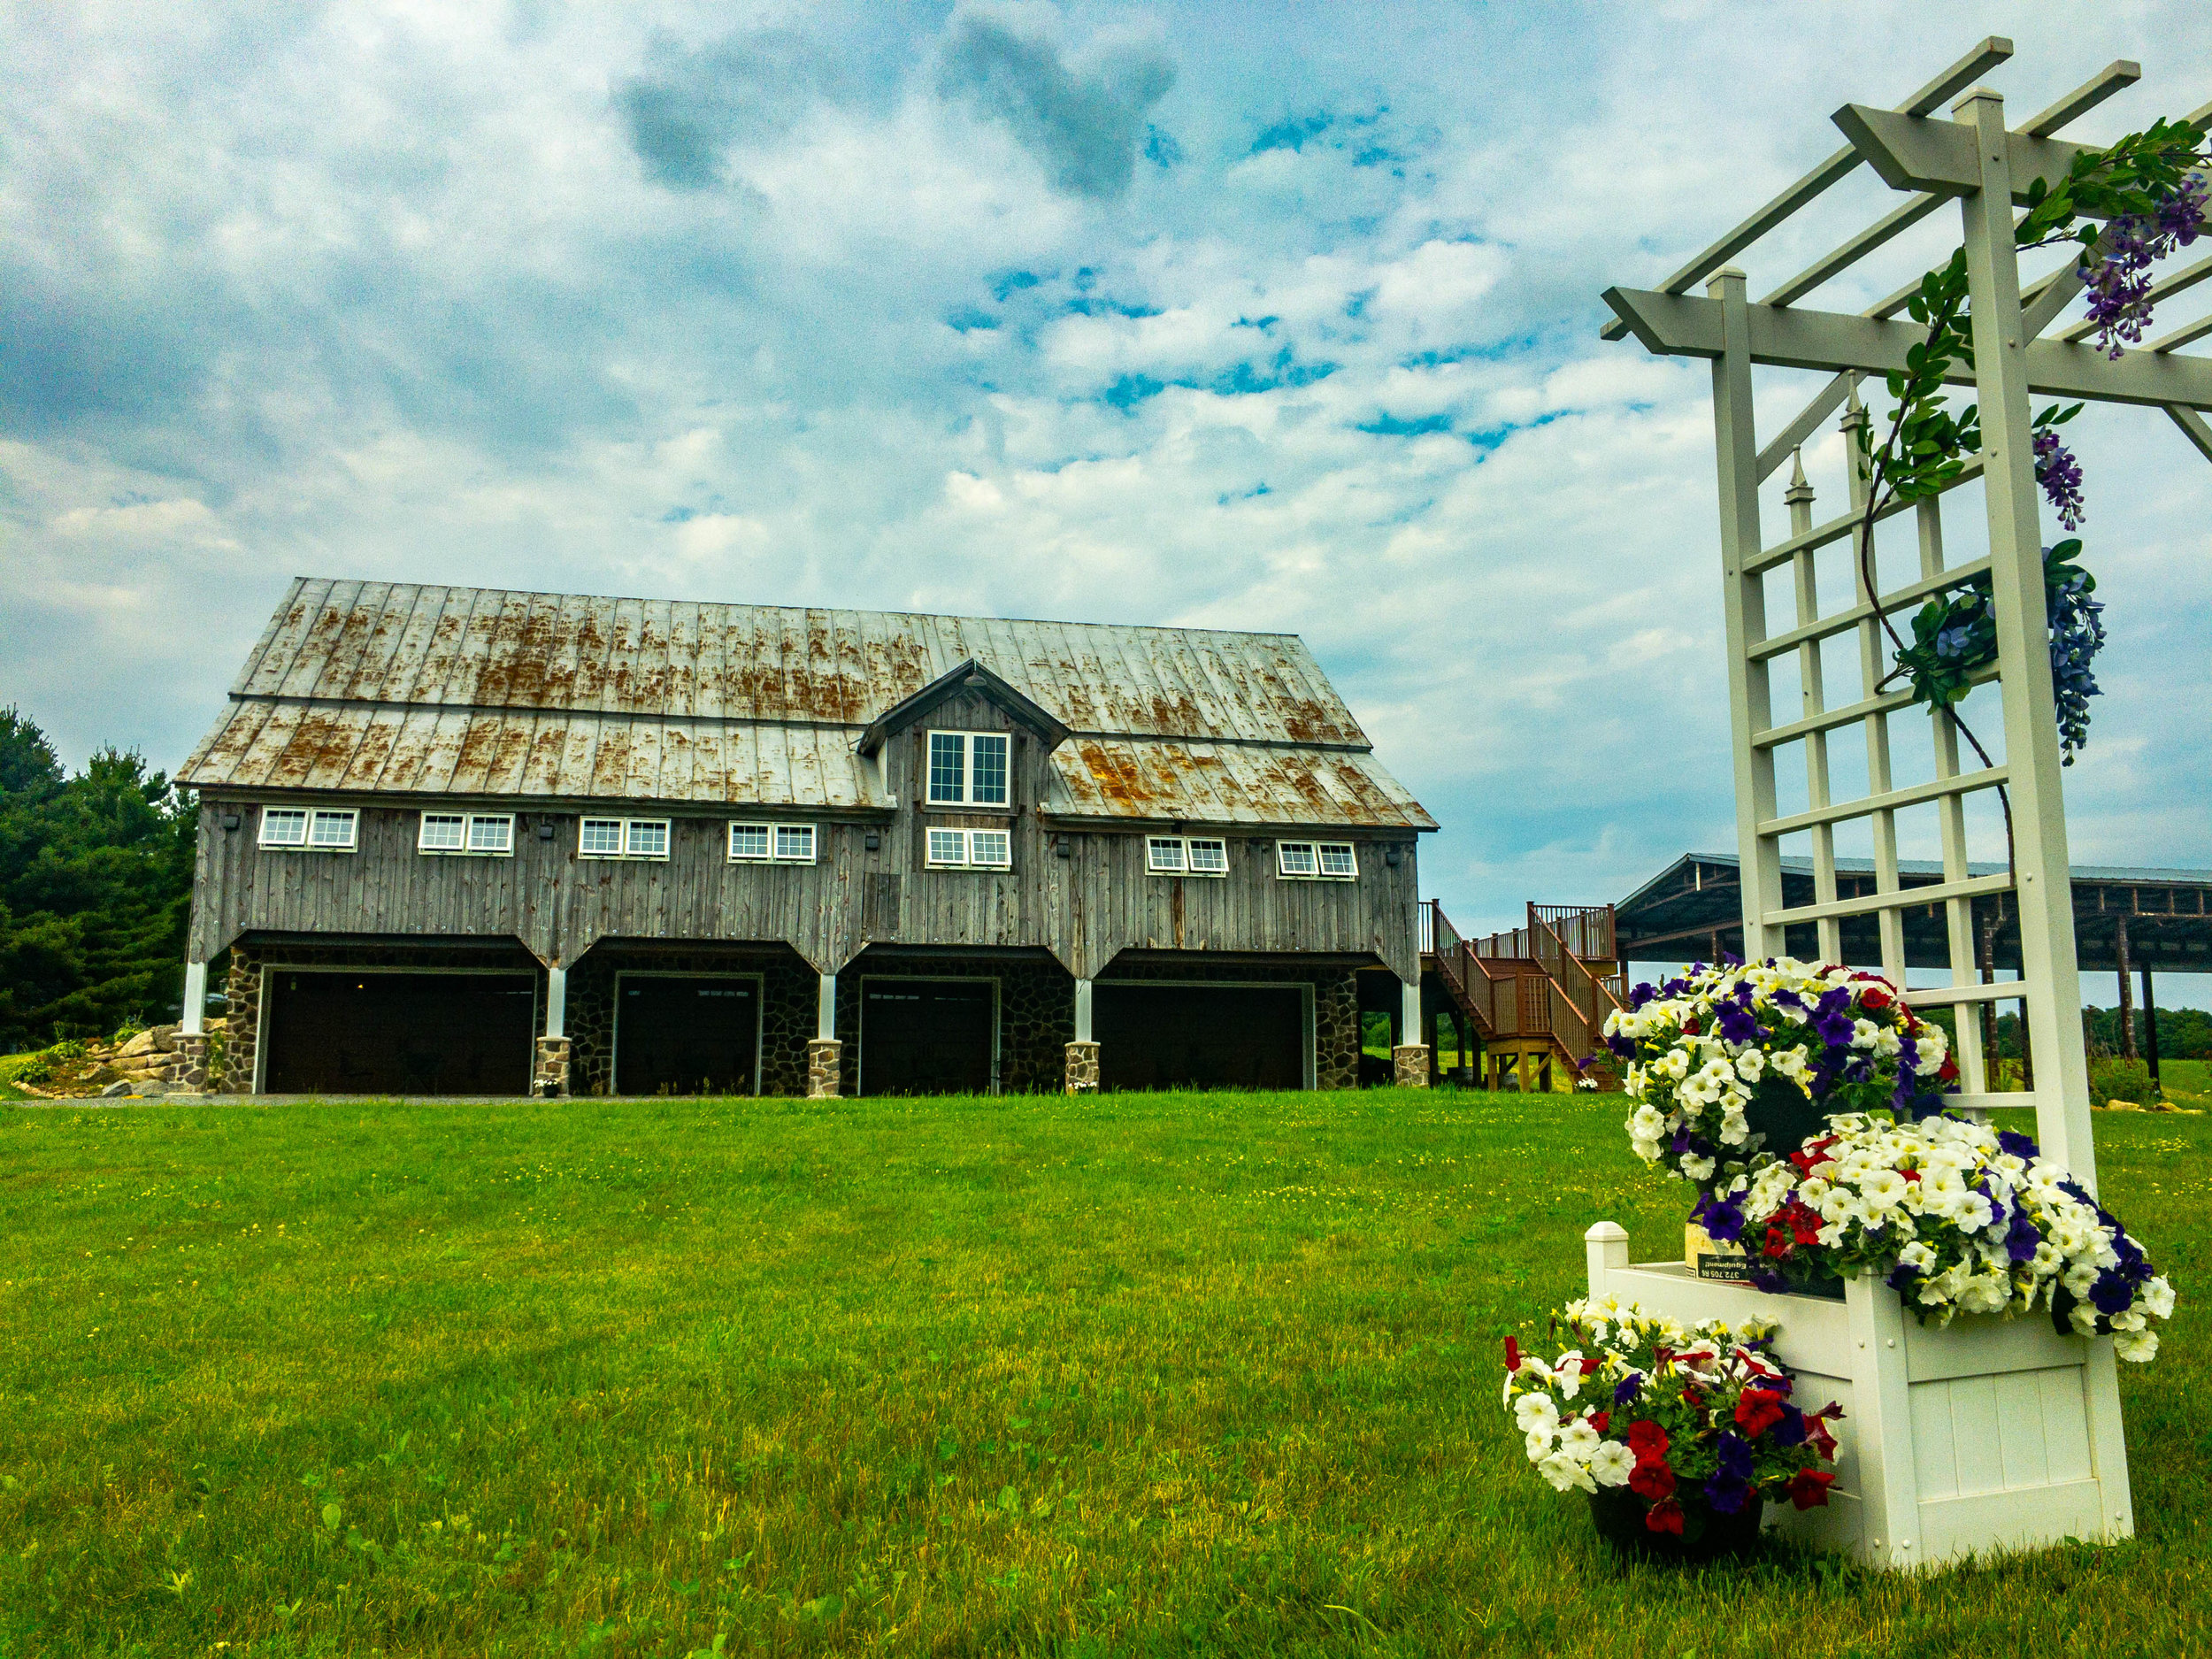 Stunning view of the Barn